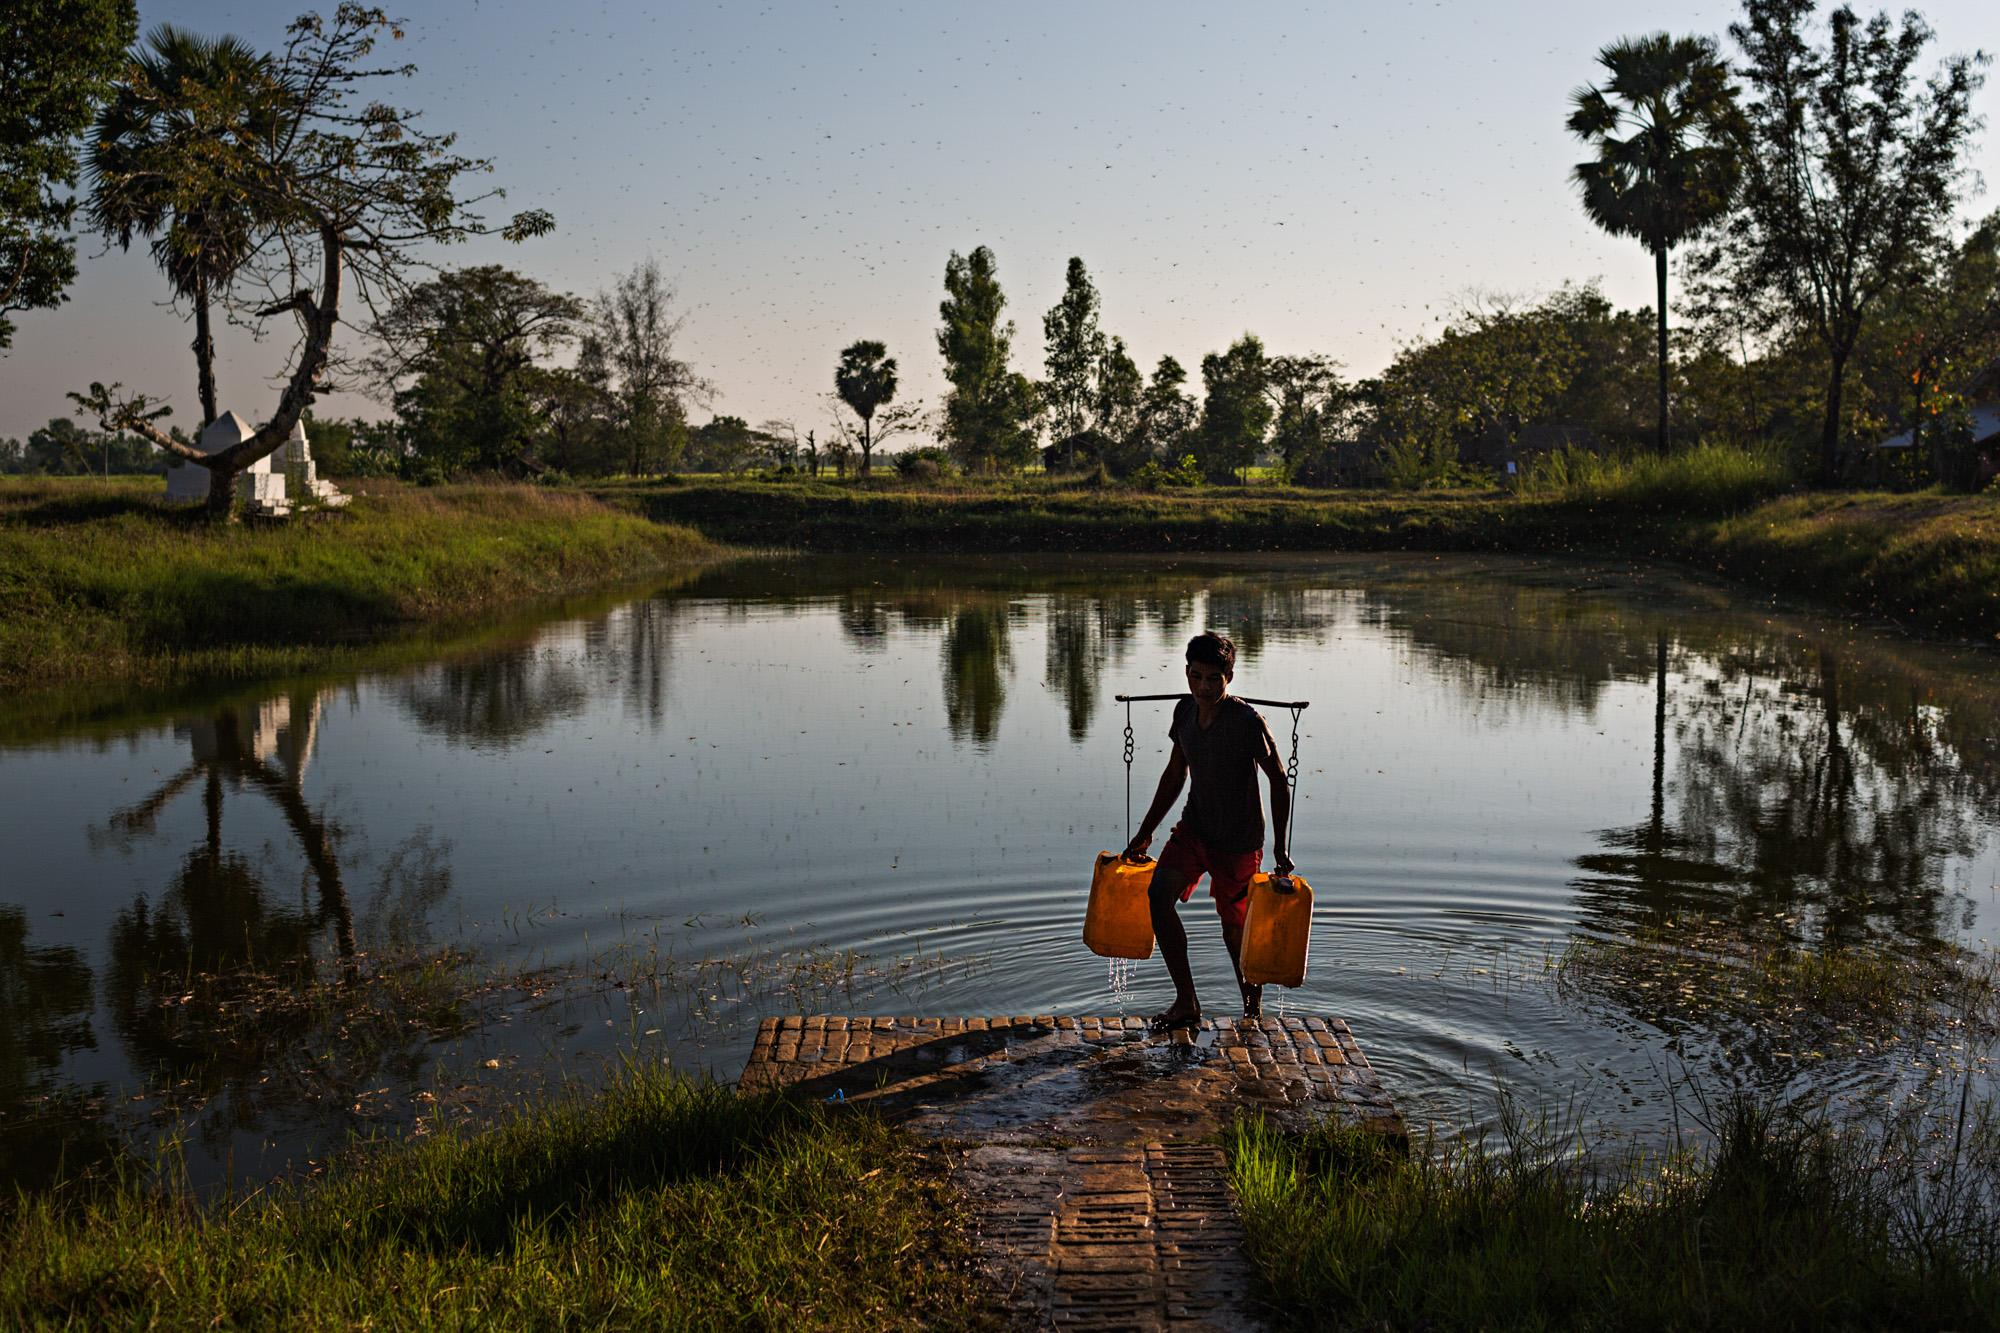 A boy gathers water from a community reservoir in a small farming village near to Pathein, Myanmar.